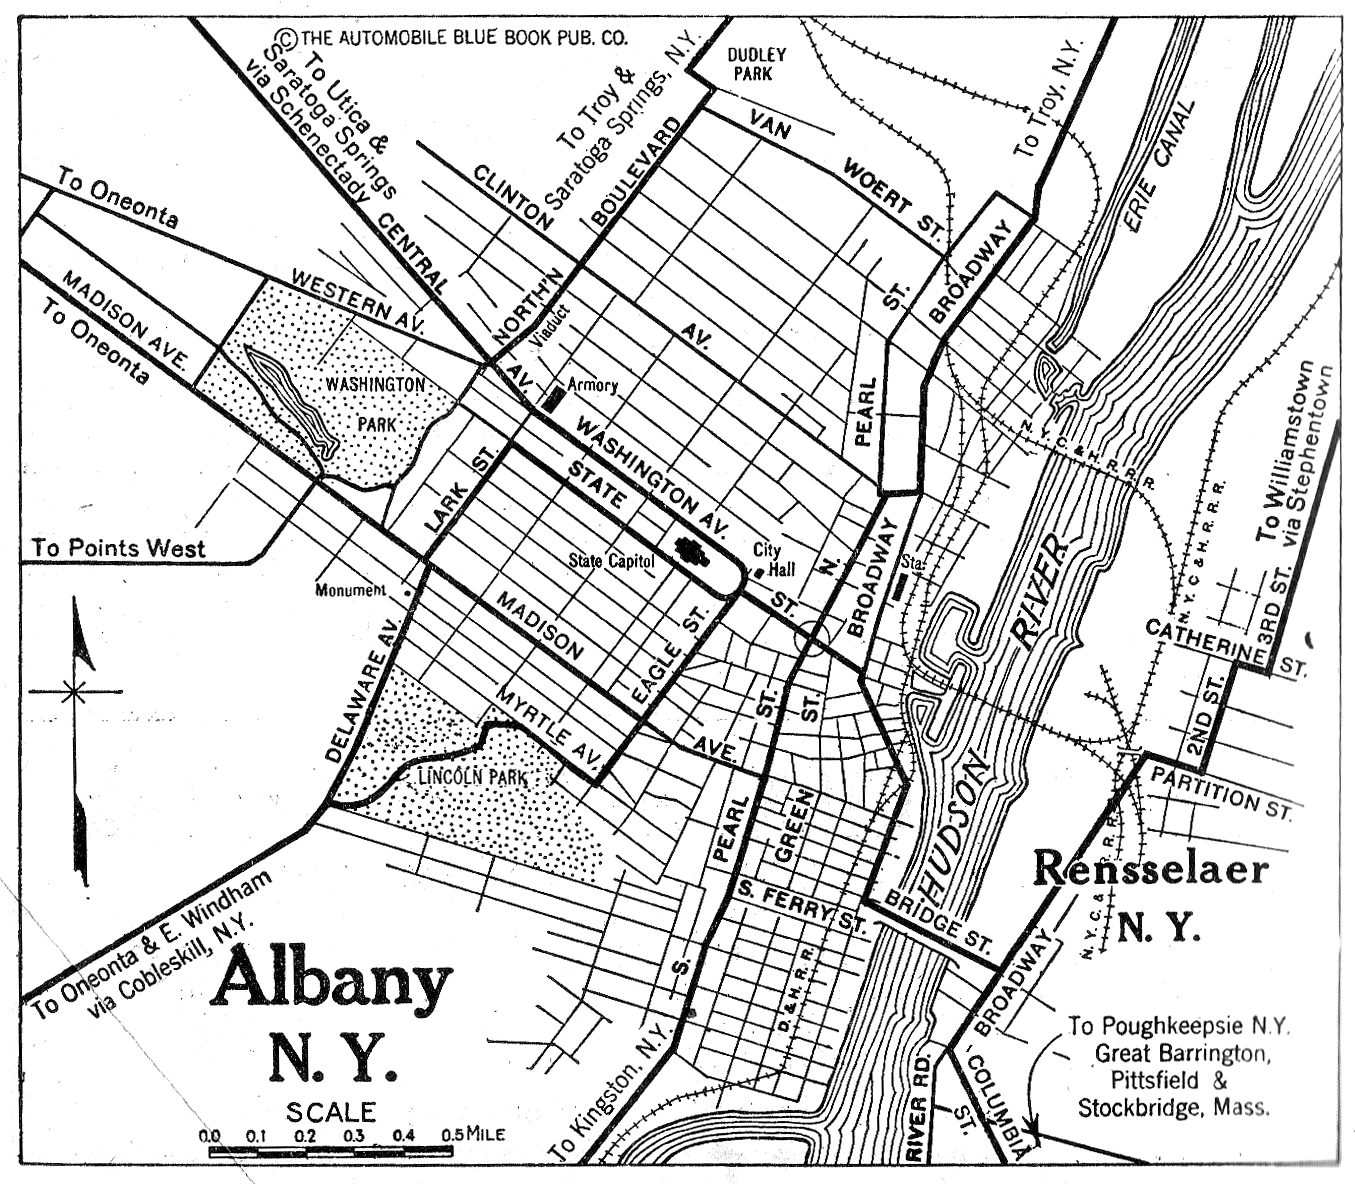 Albany New York Ward Maps Submited Images